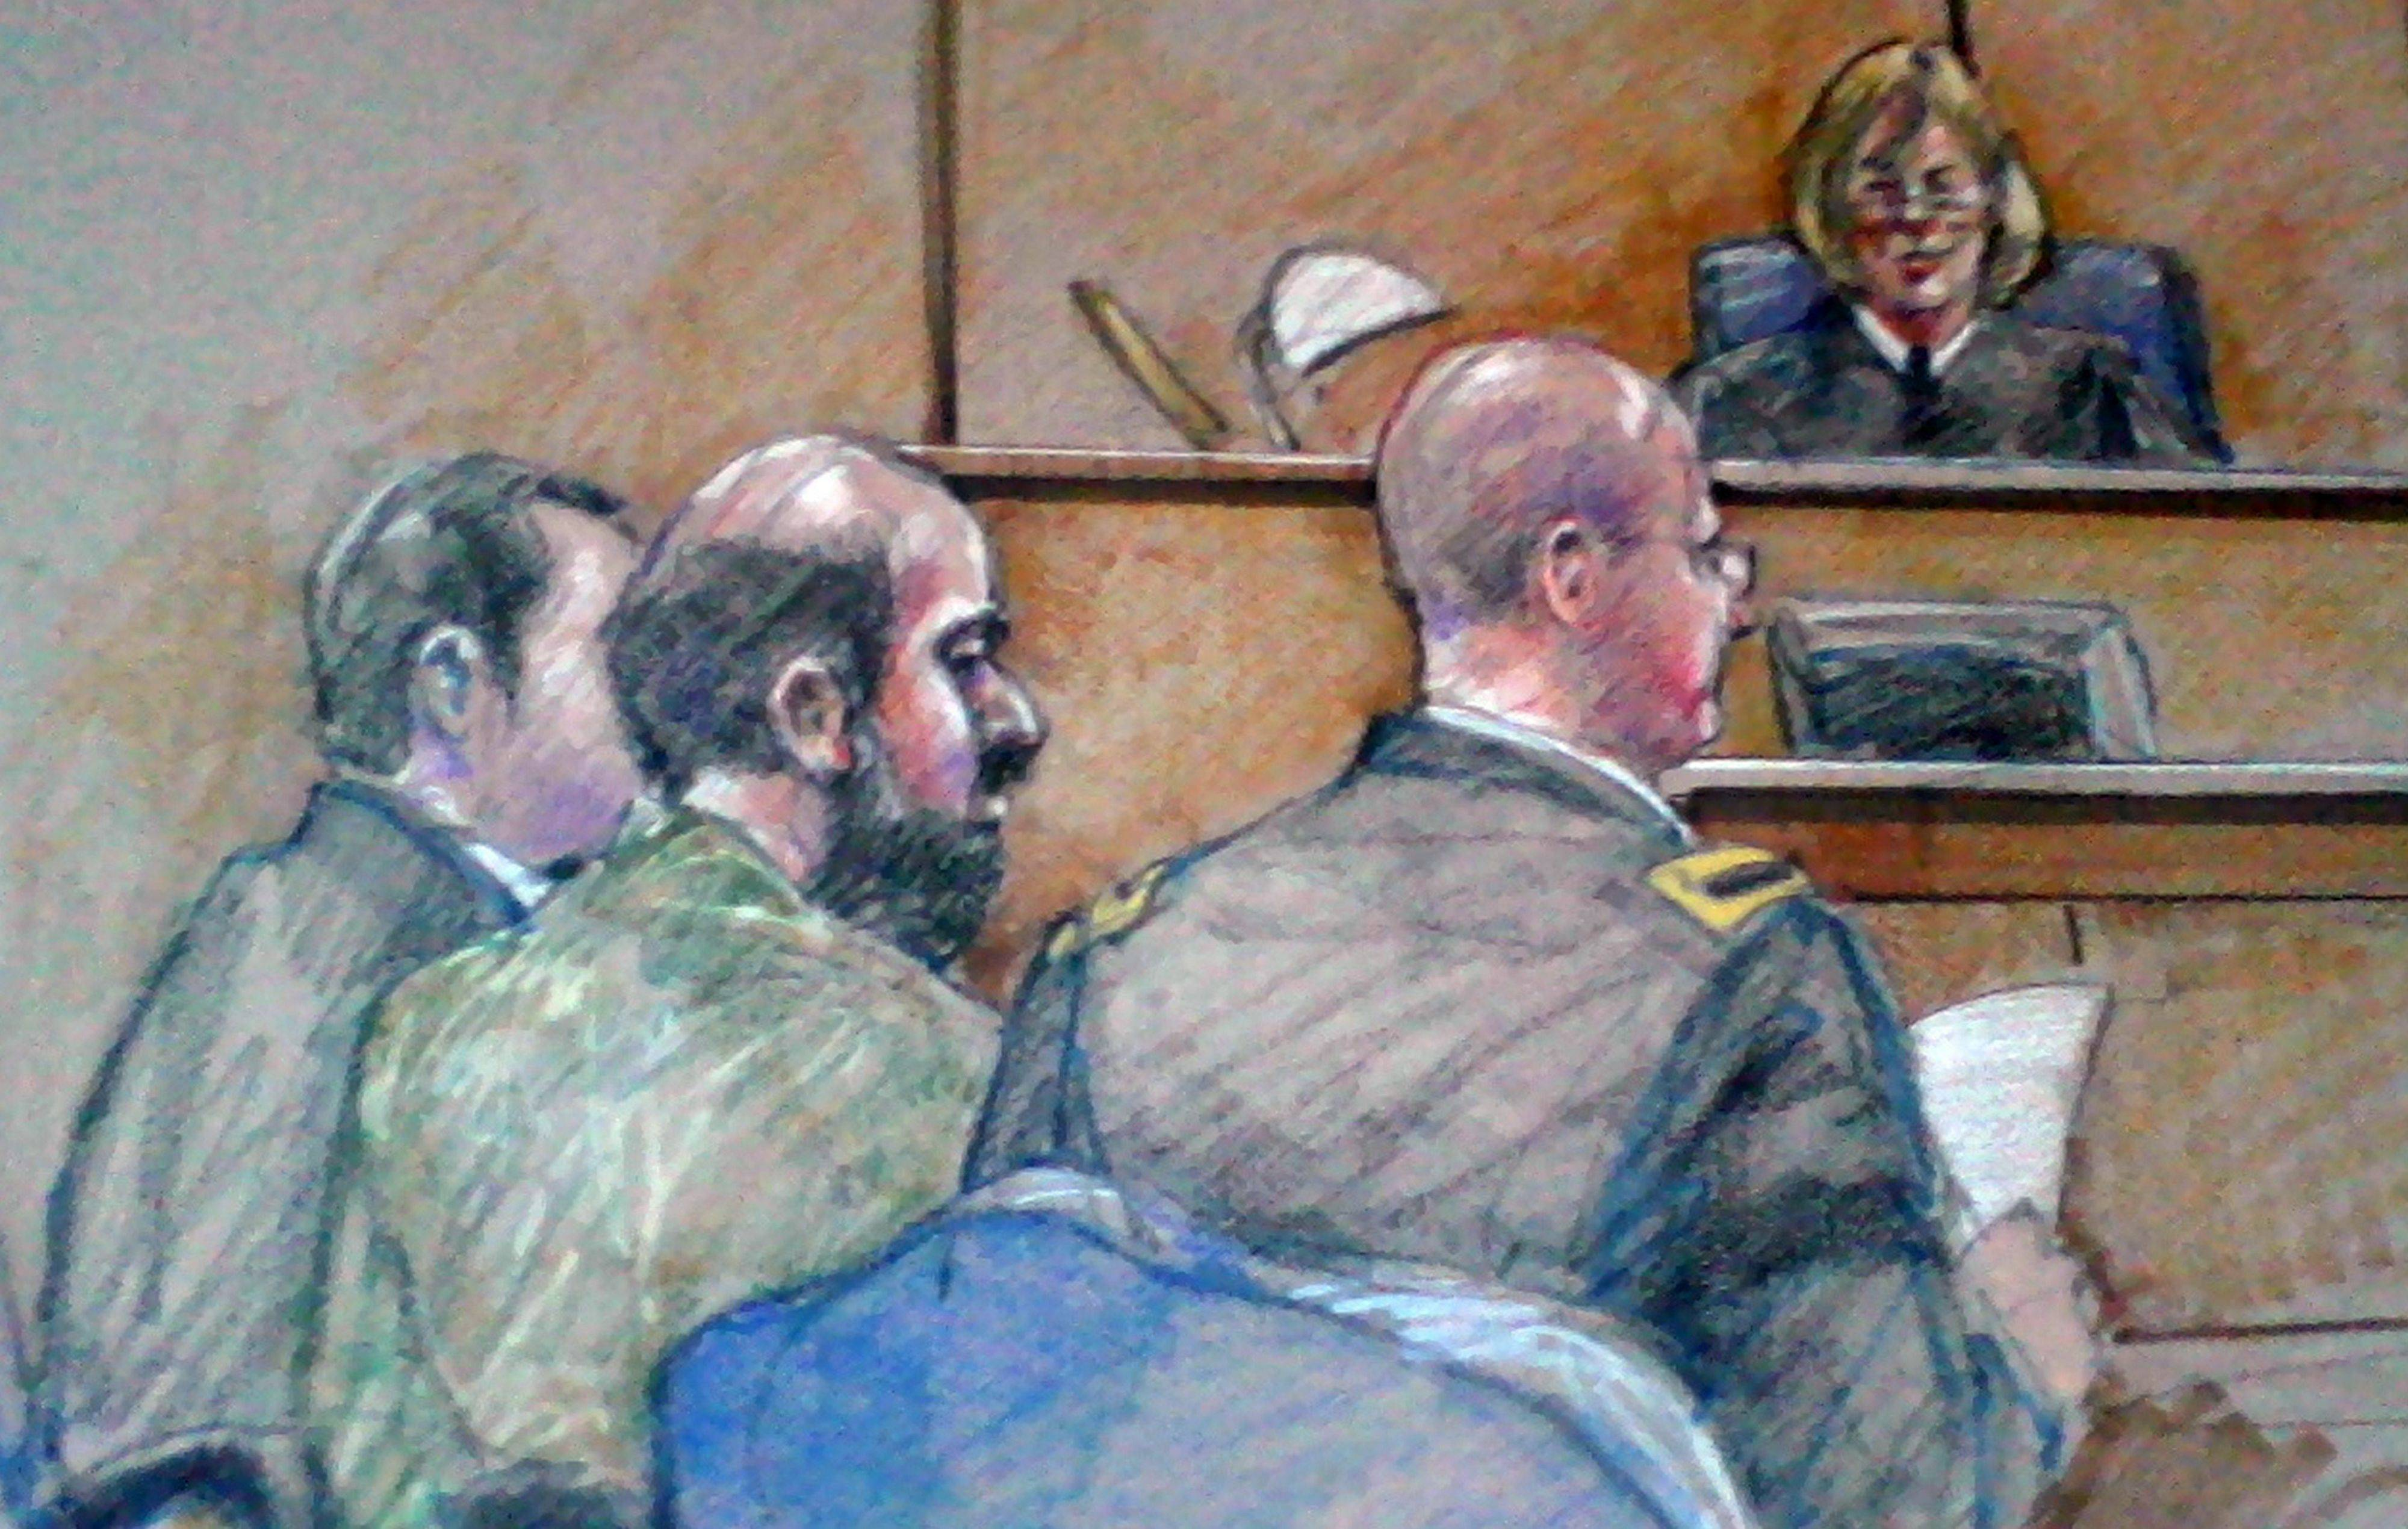 In this Dec. 18, 2012, courtroom sketch, U.S. Army Maj. Nidal Hasan, center foreground with back showing, is seen sitting between members of His defense team during a hearing in Fort Hood, Texas. The Army psychiatrist's trial was scheduled to begin last week.